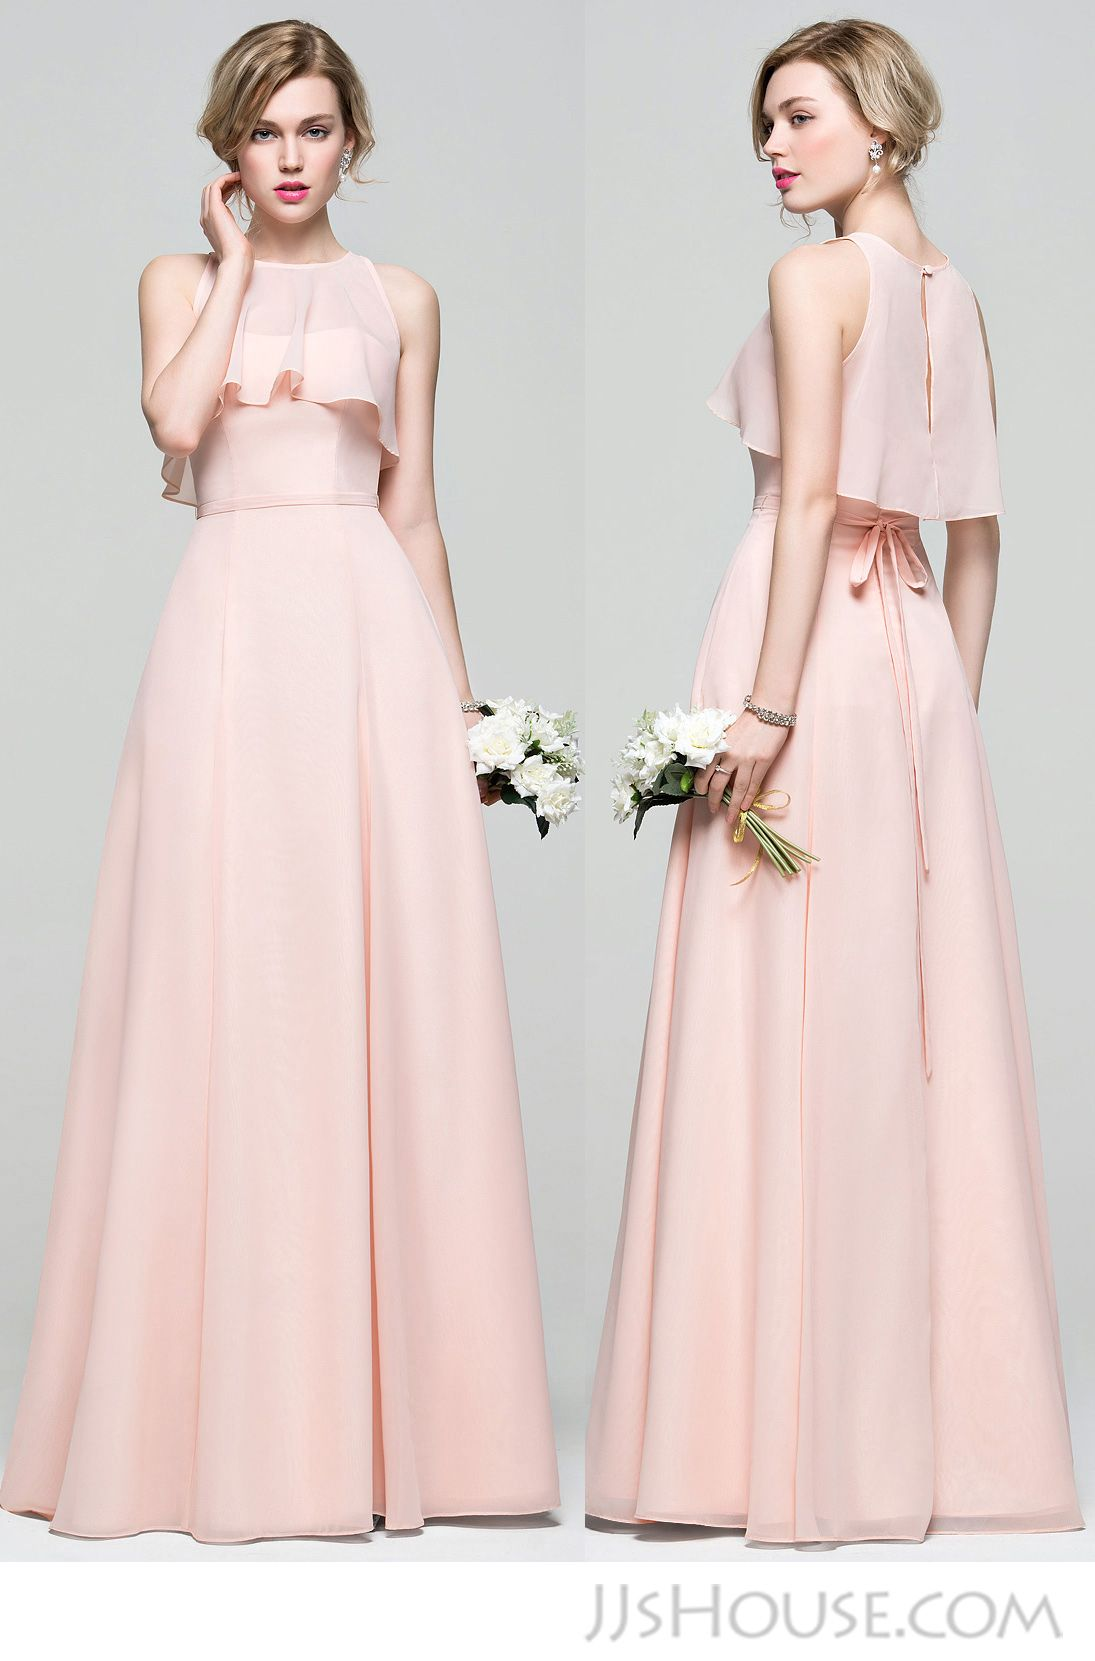 Alineprincess sweetheart floorlength chiffon bridesmaid dress